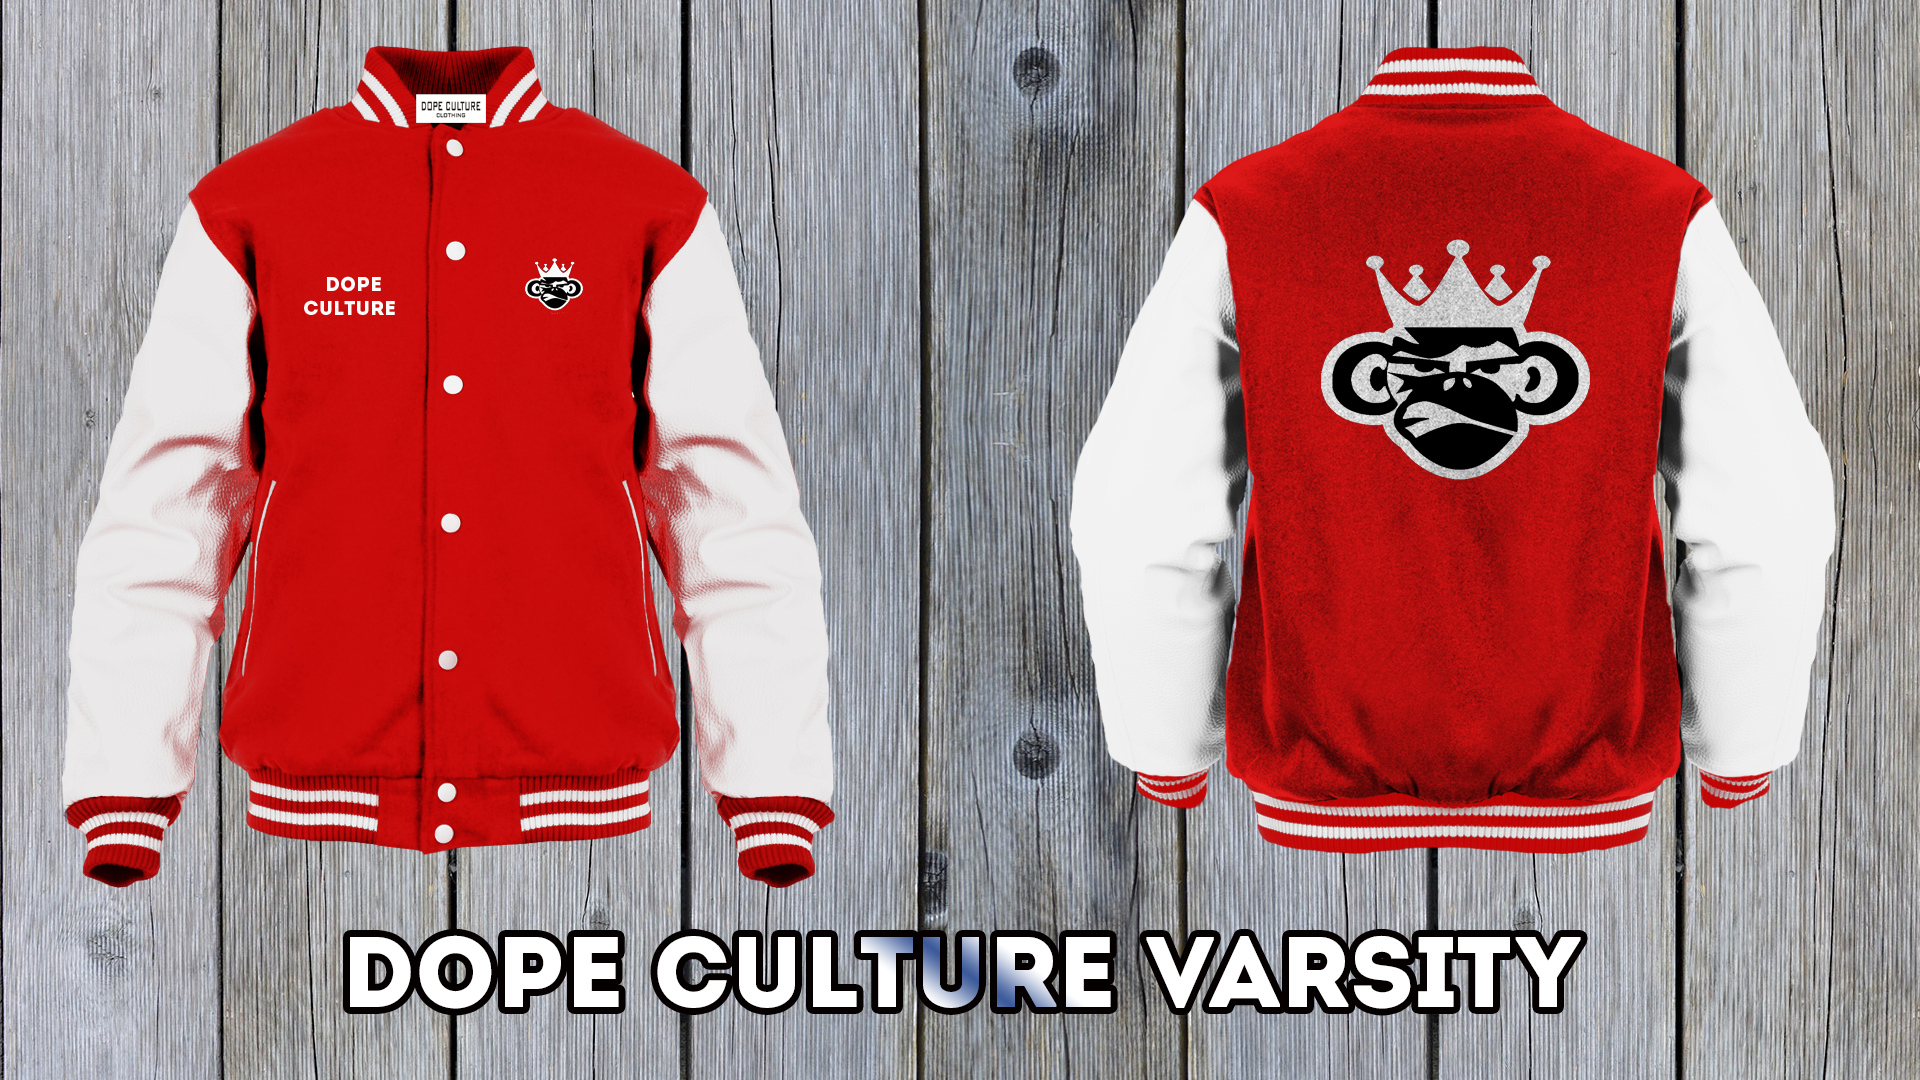 Dope-Culture-Varsity-Jacket-3-red-1